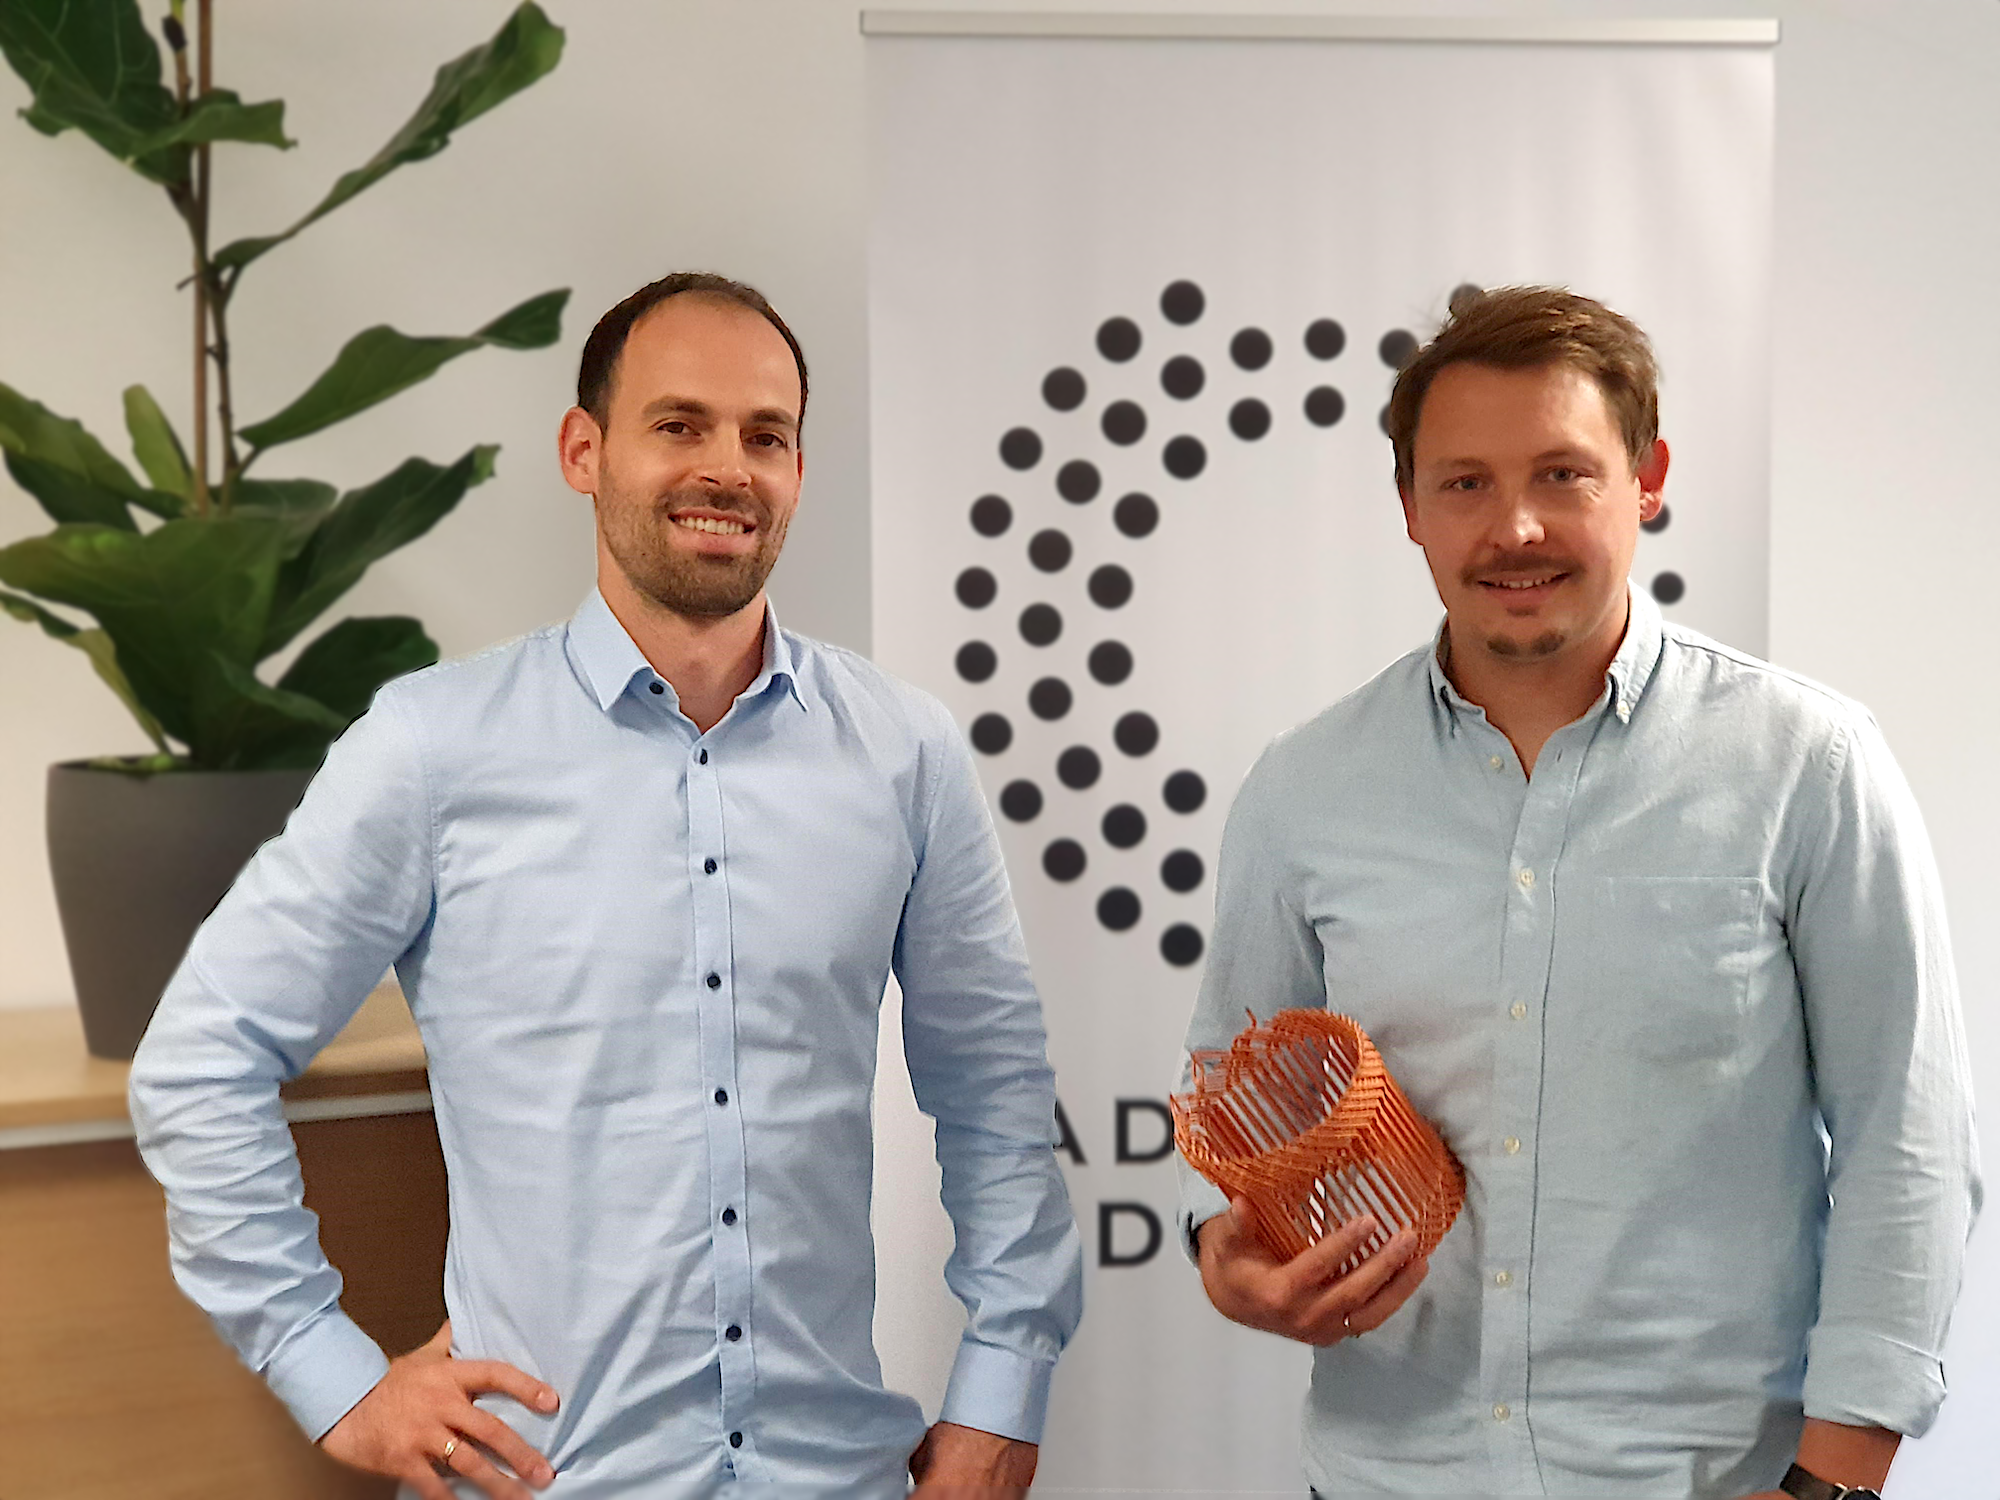 Dr. Jakob Jung (CEO and co-founder) and Axel Helm (General manager) of Additive Drives. Image via Additive Drives.